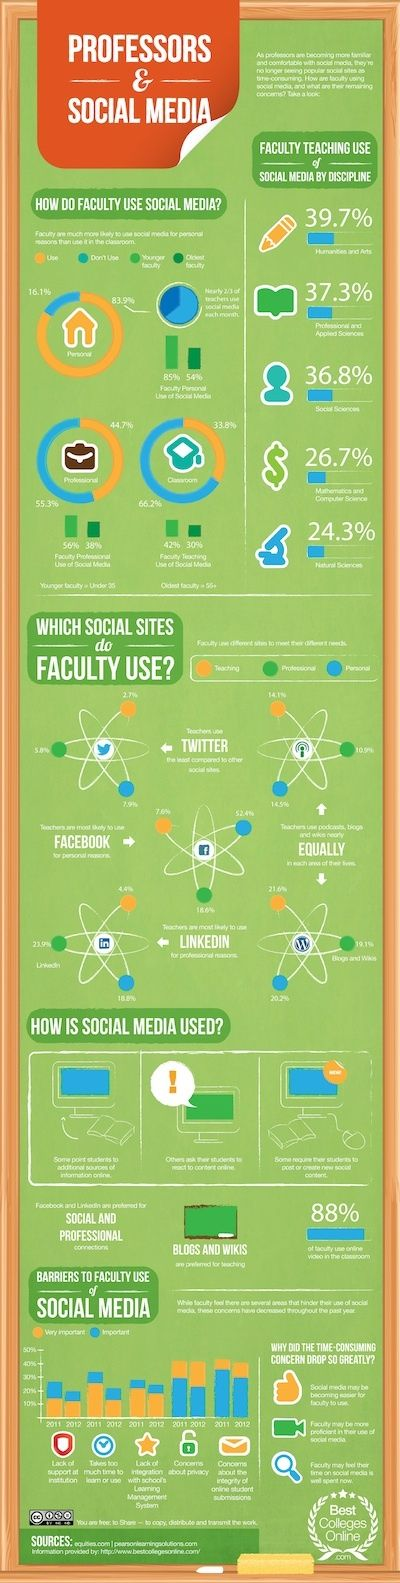 Professors & Social Media - Best Colleges Online